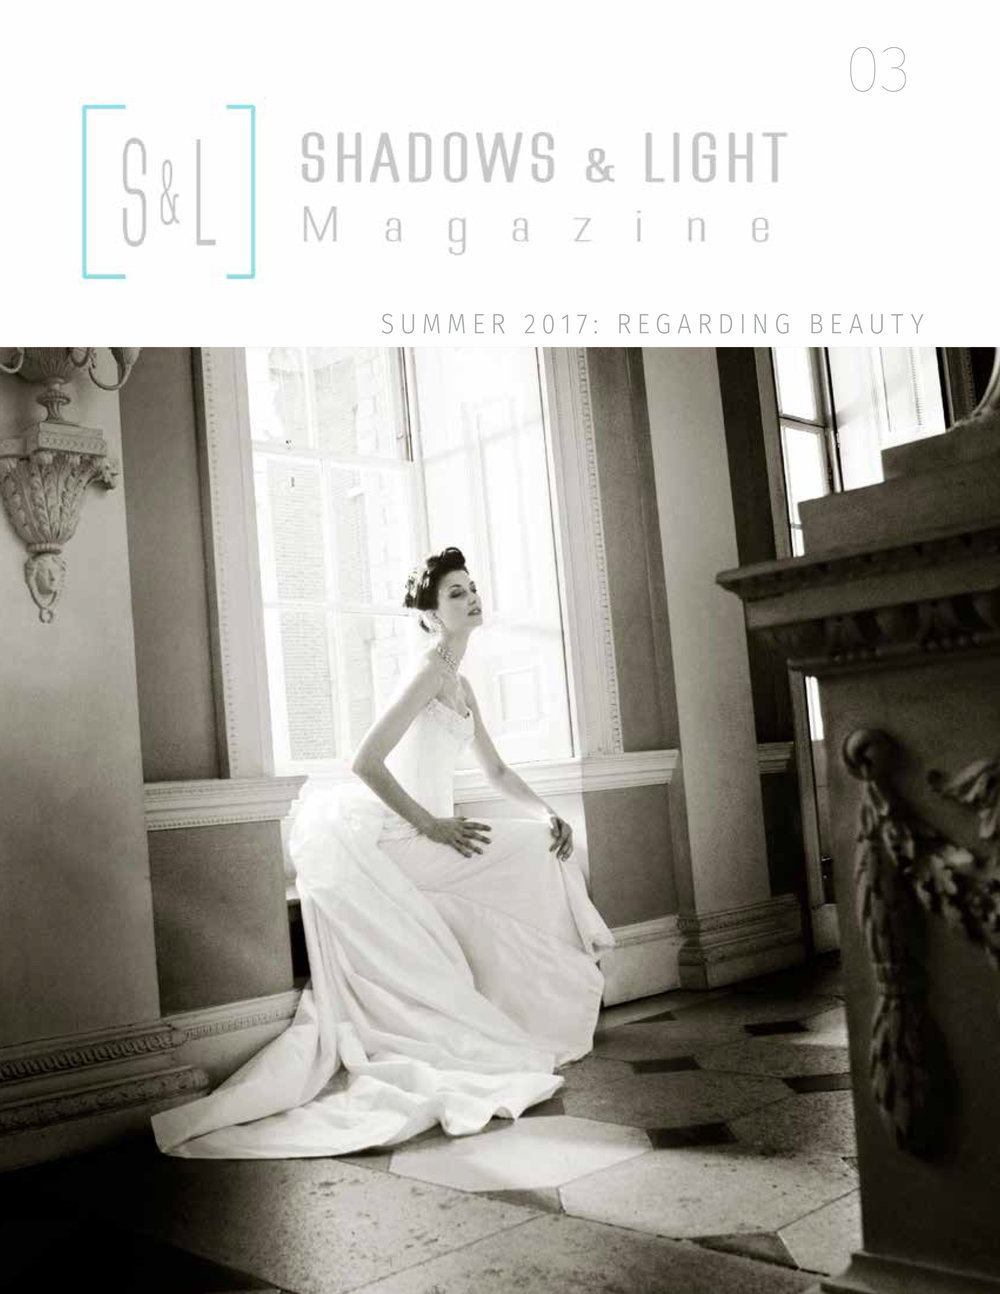 Shadows and Light Issue 03